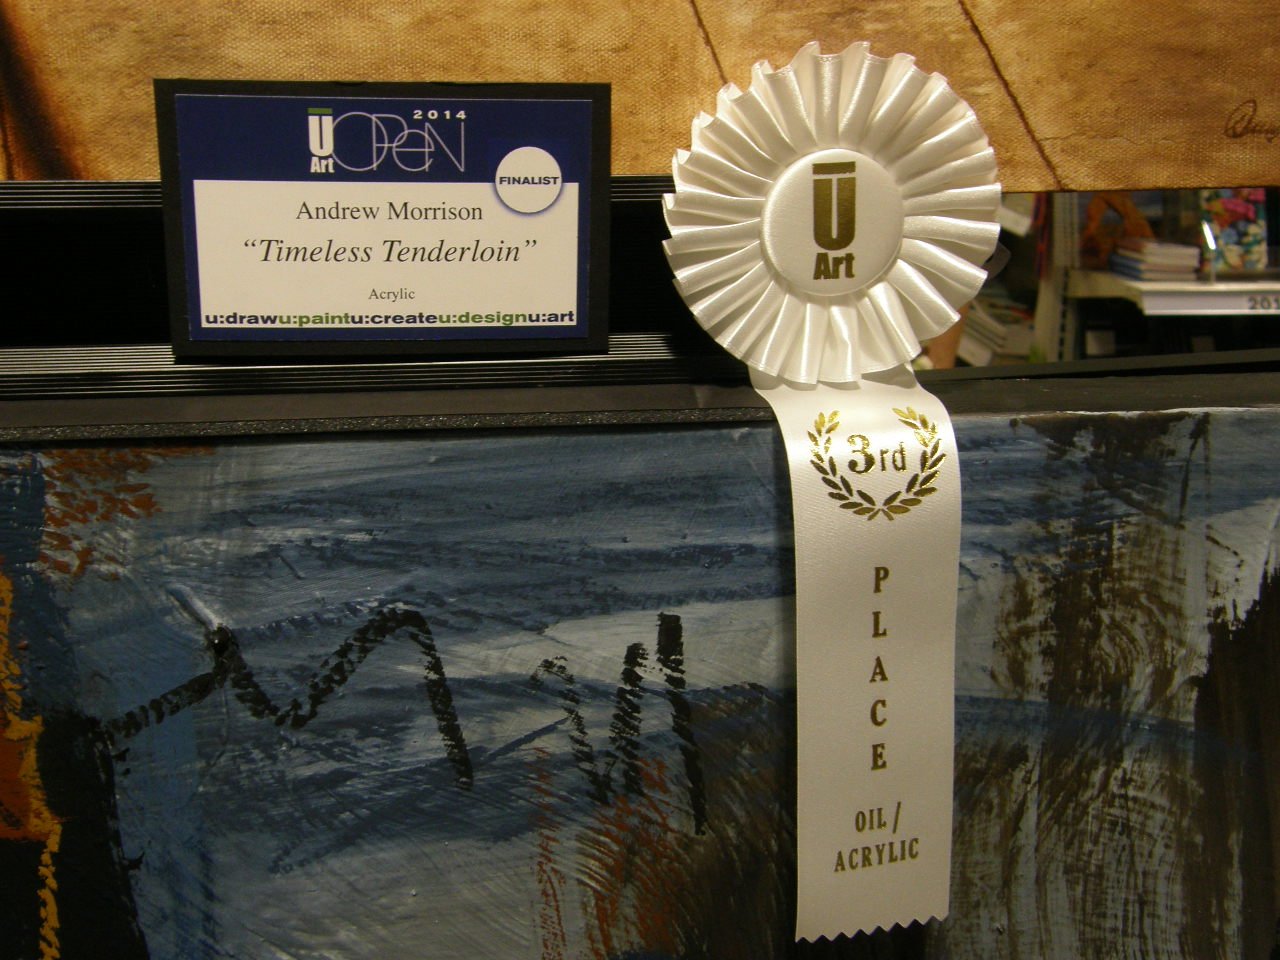 University Art Competition, 3rd Place for Timeless Tenderloin